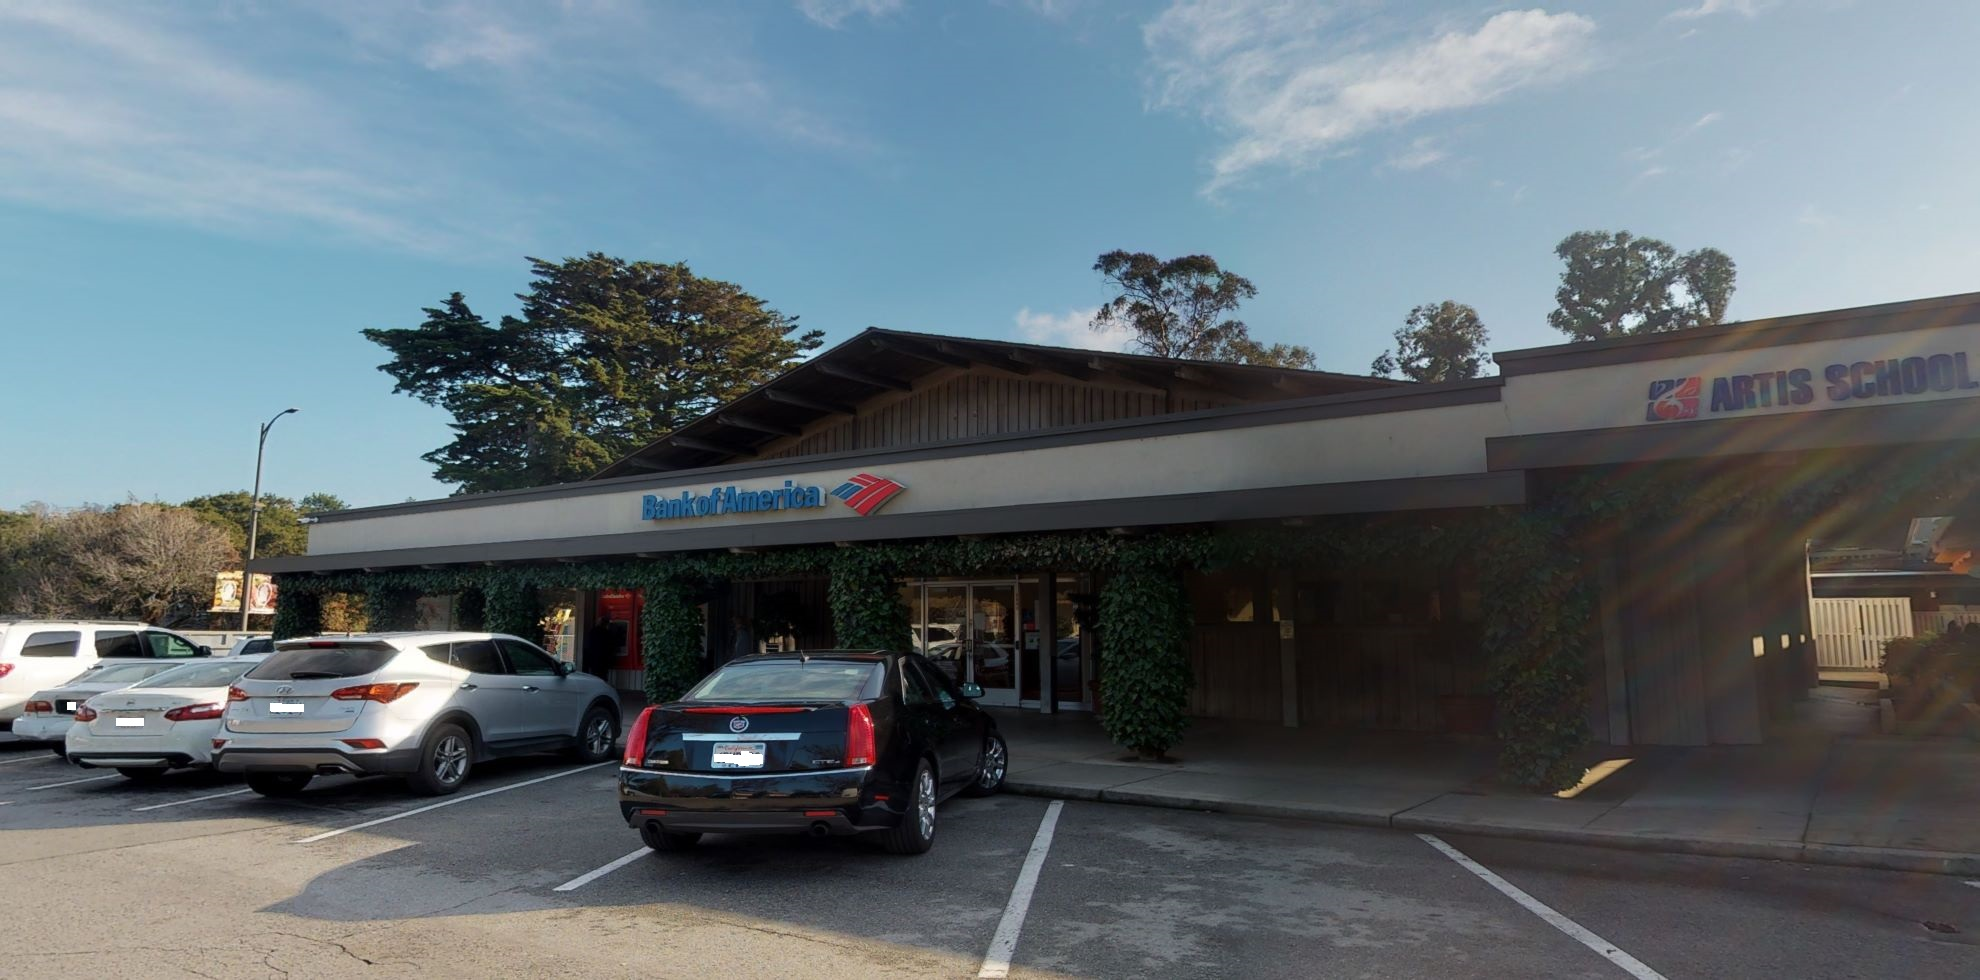 Bank of America financial center with walk-up ATM   2031 Ralston Ave, Belmont, CA 94002